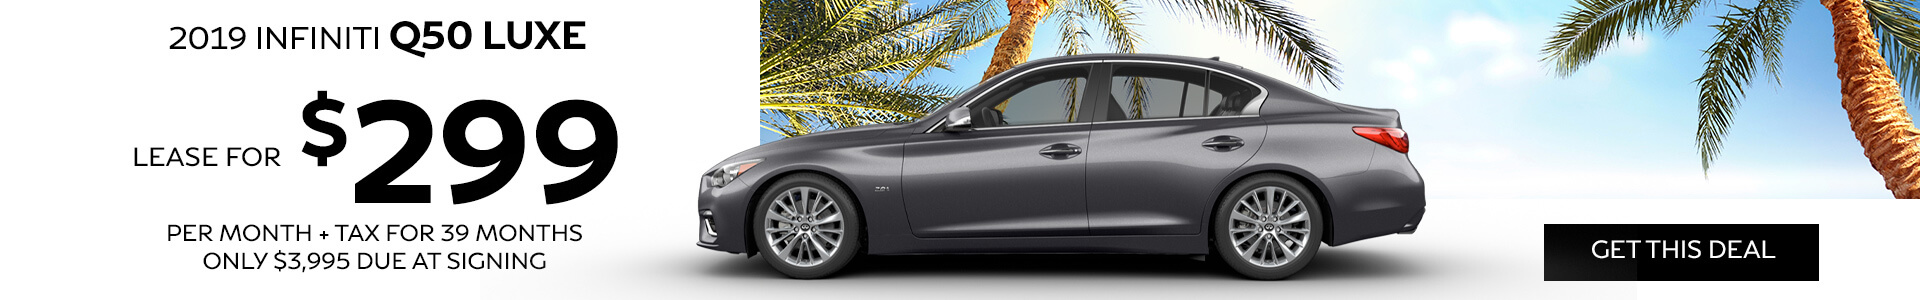 2019 Q50 LUXE - Lease for $299